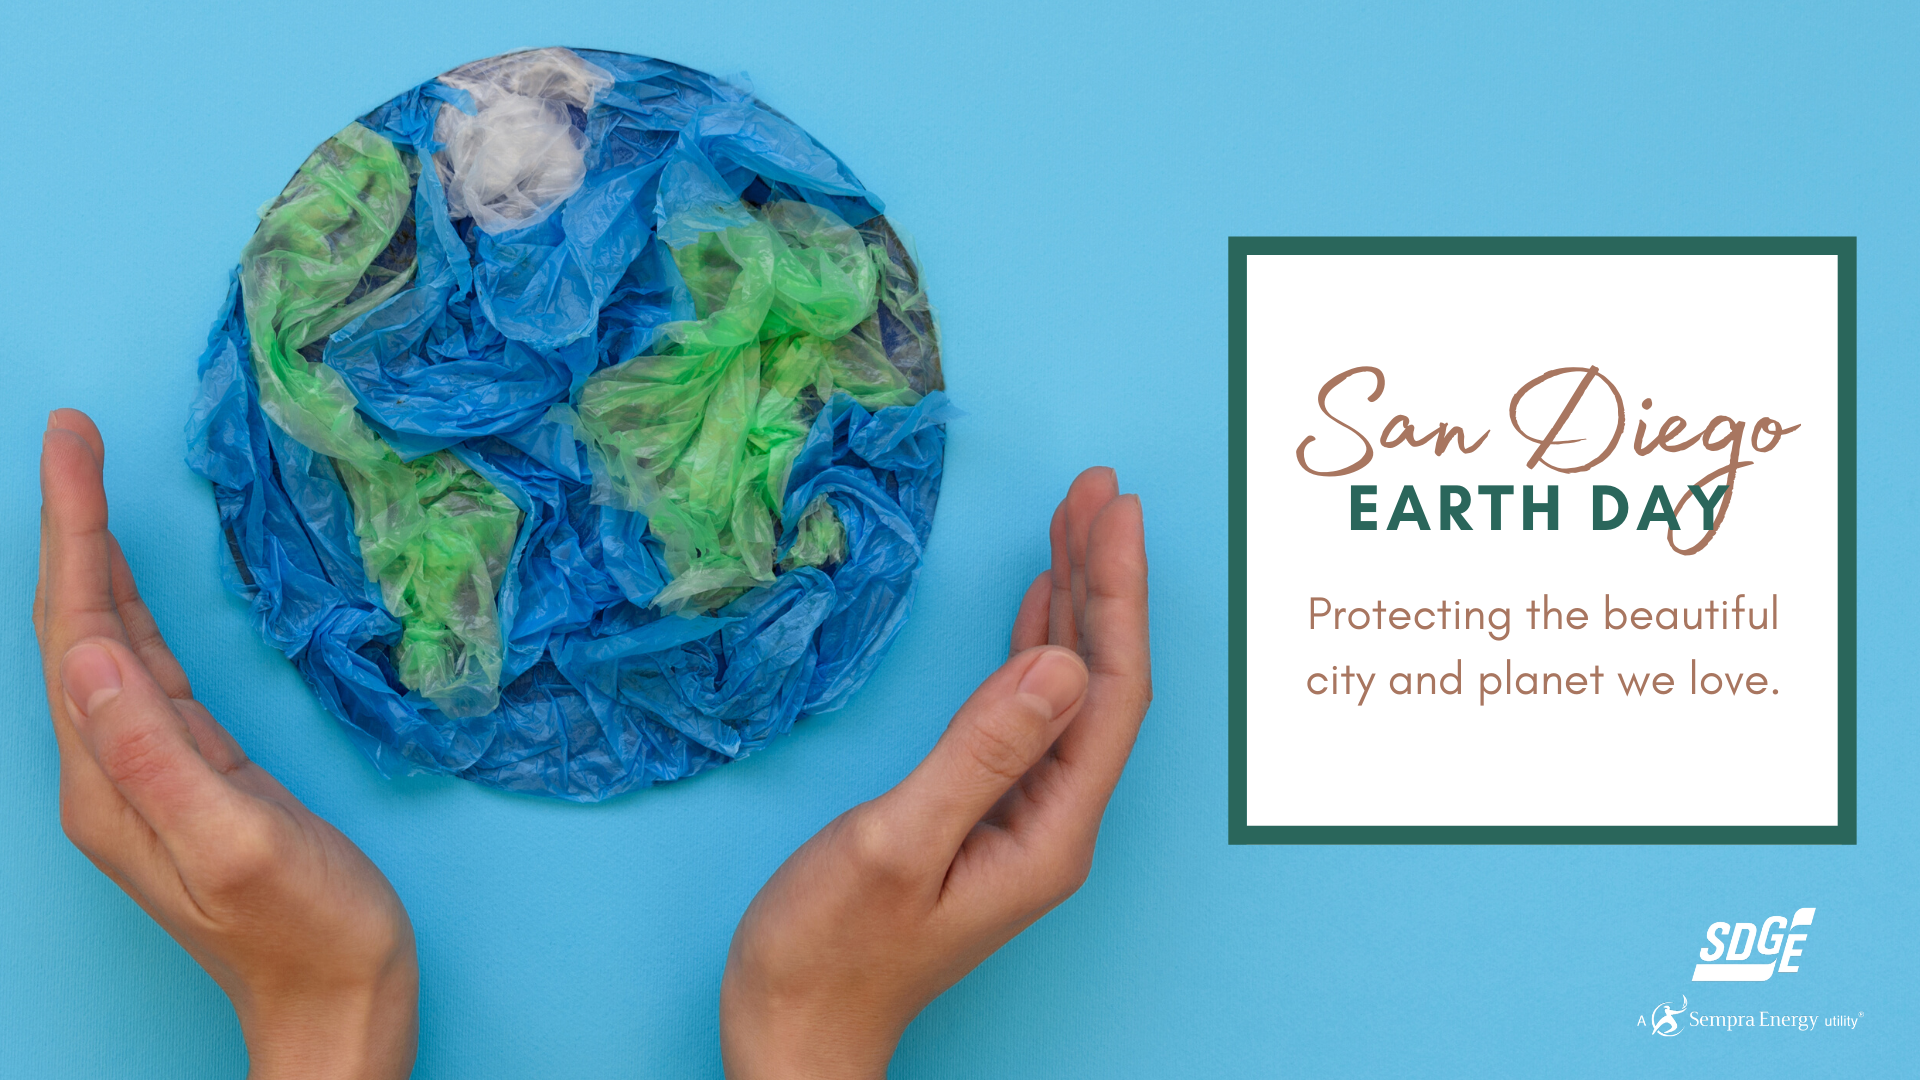 Earth Day: When We Take Care of Our Environment, It Takes Care of Us